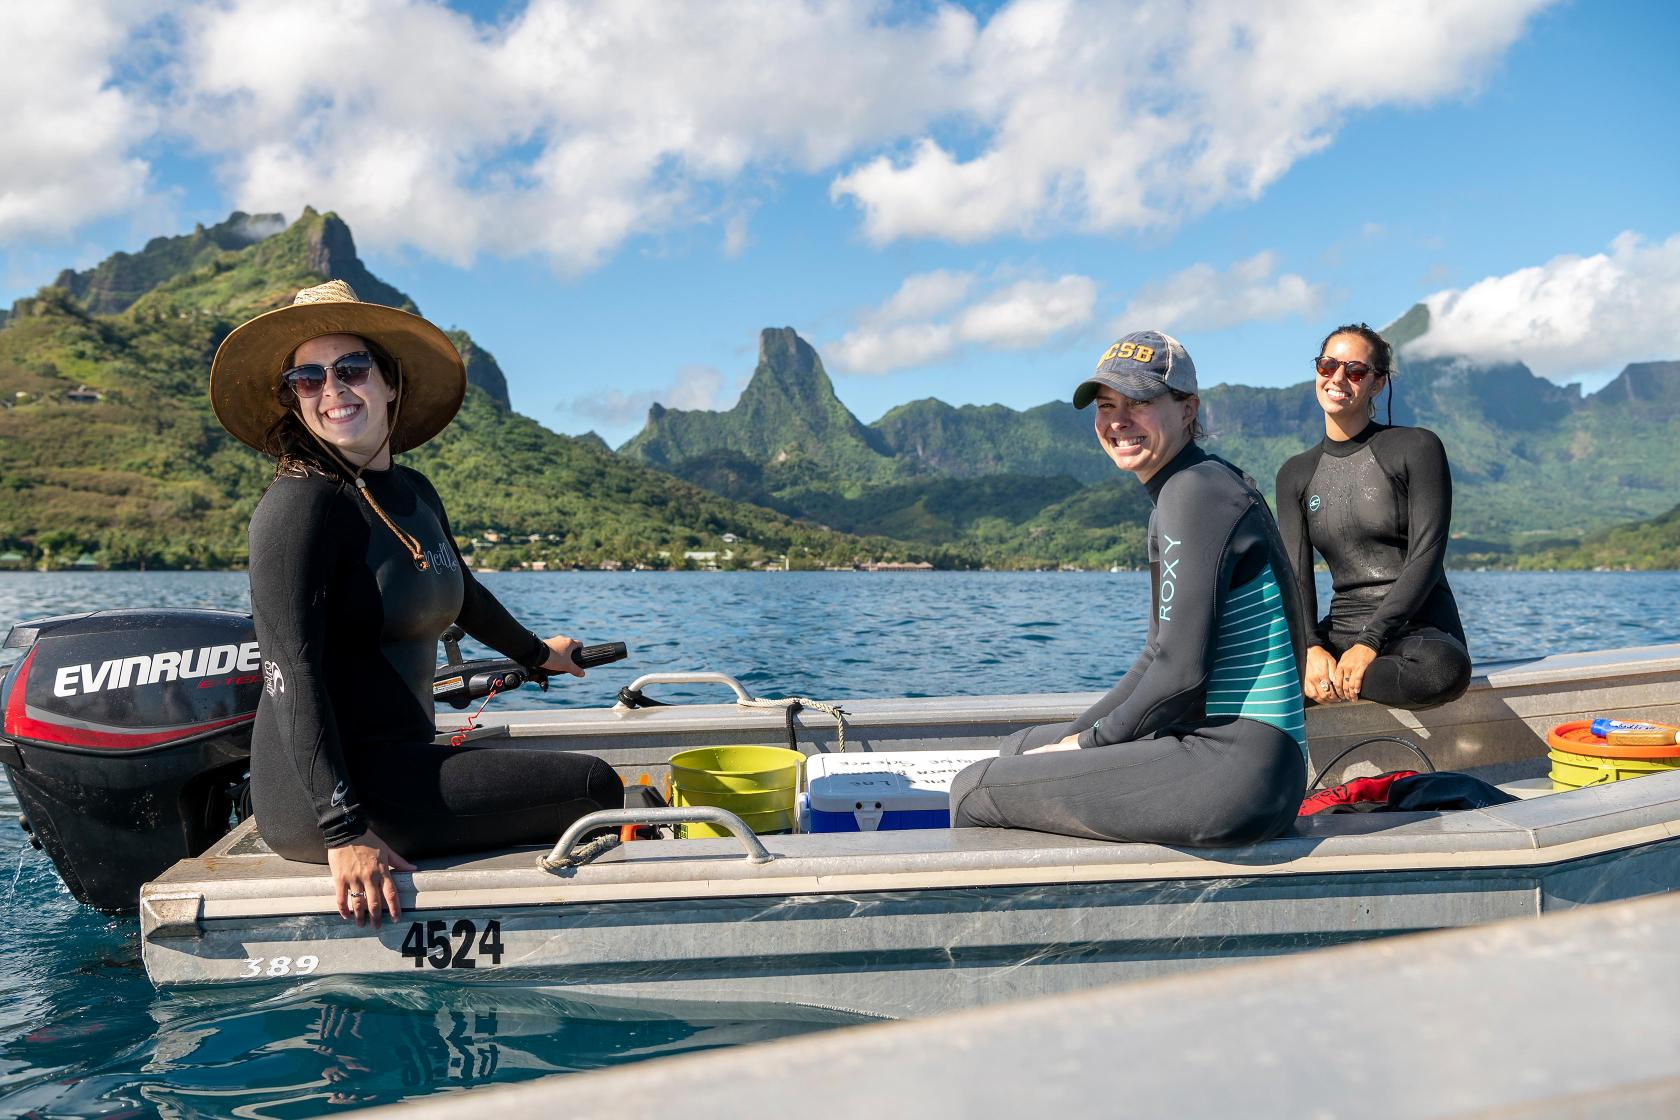 Two student researchers on motorboat in Moorea